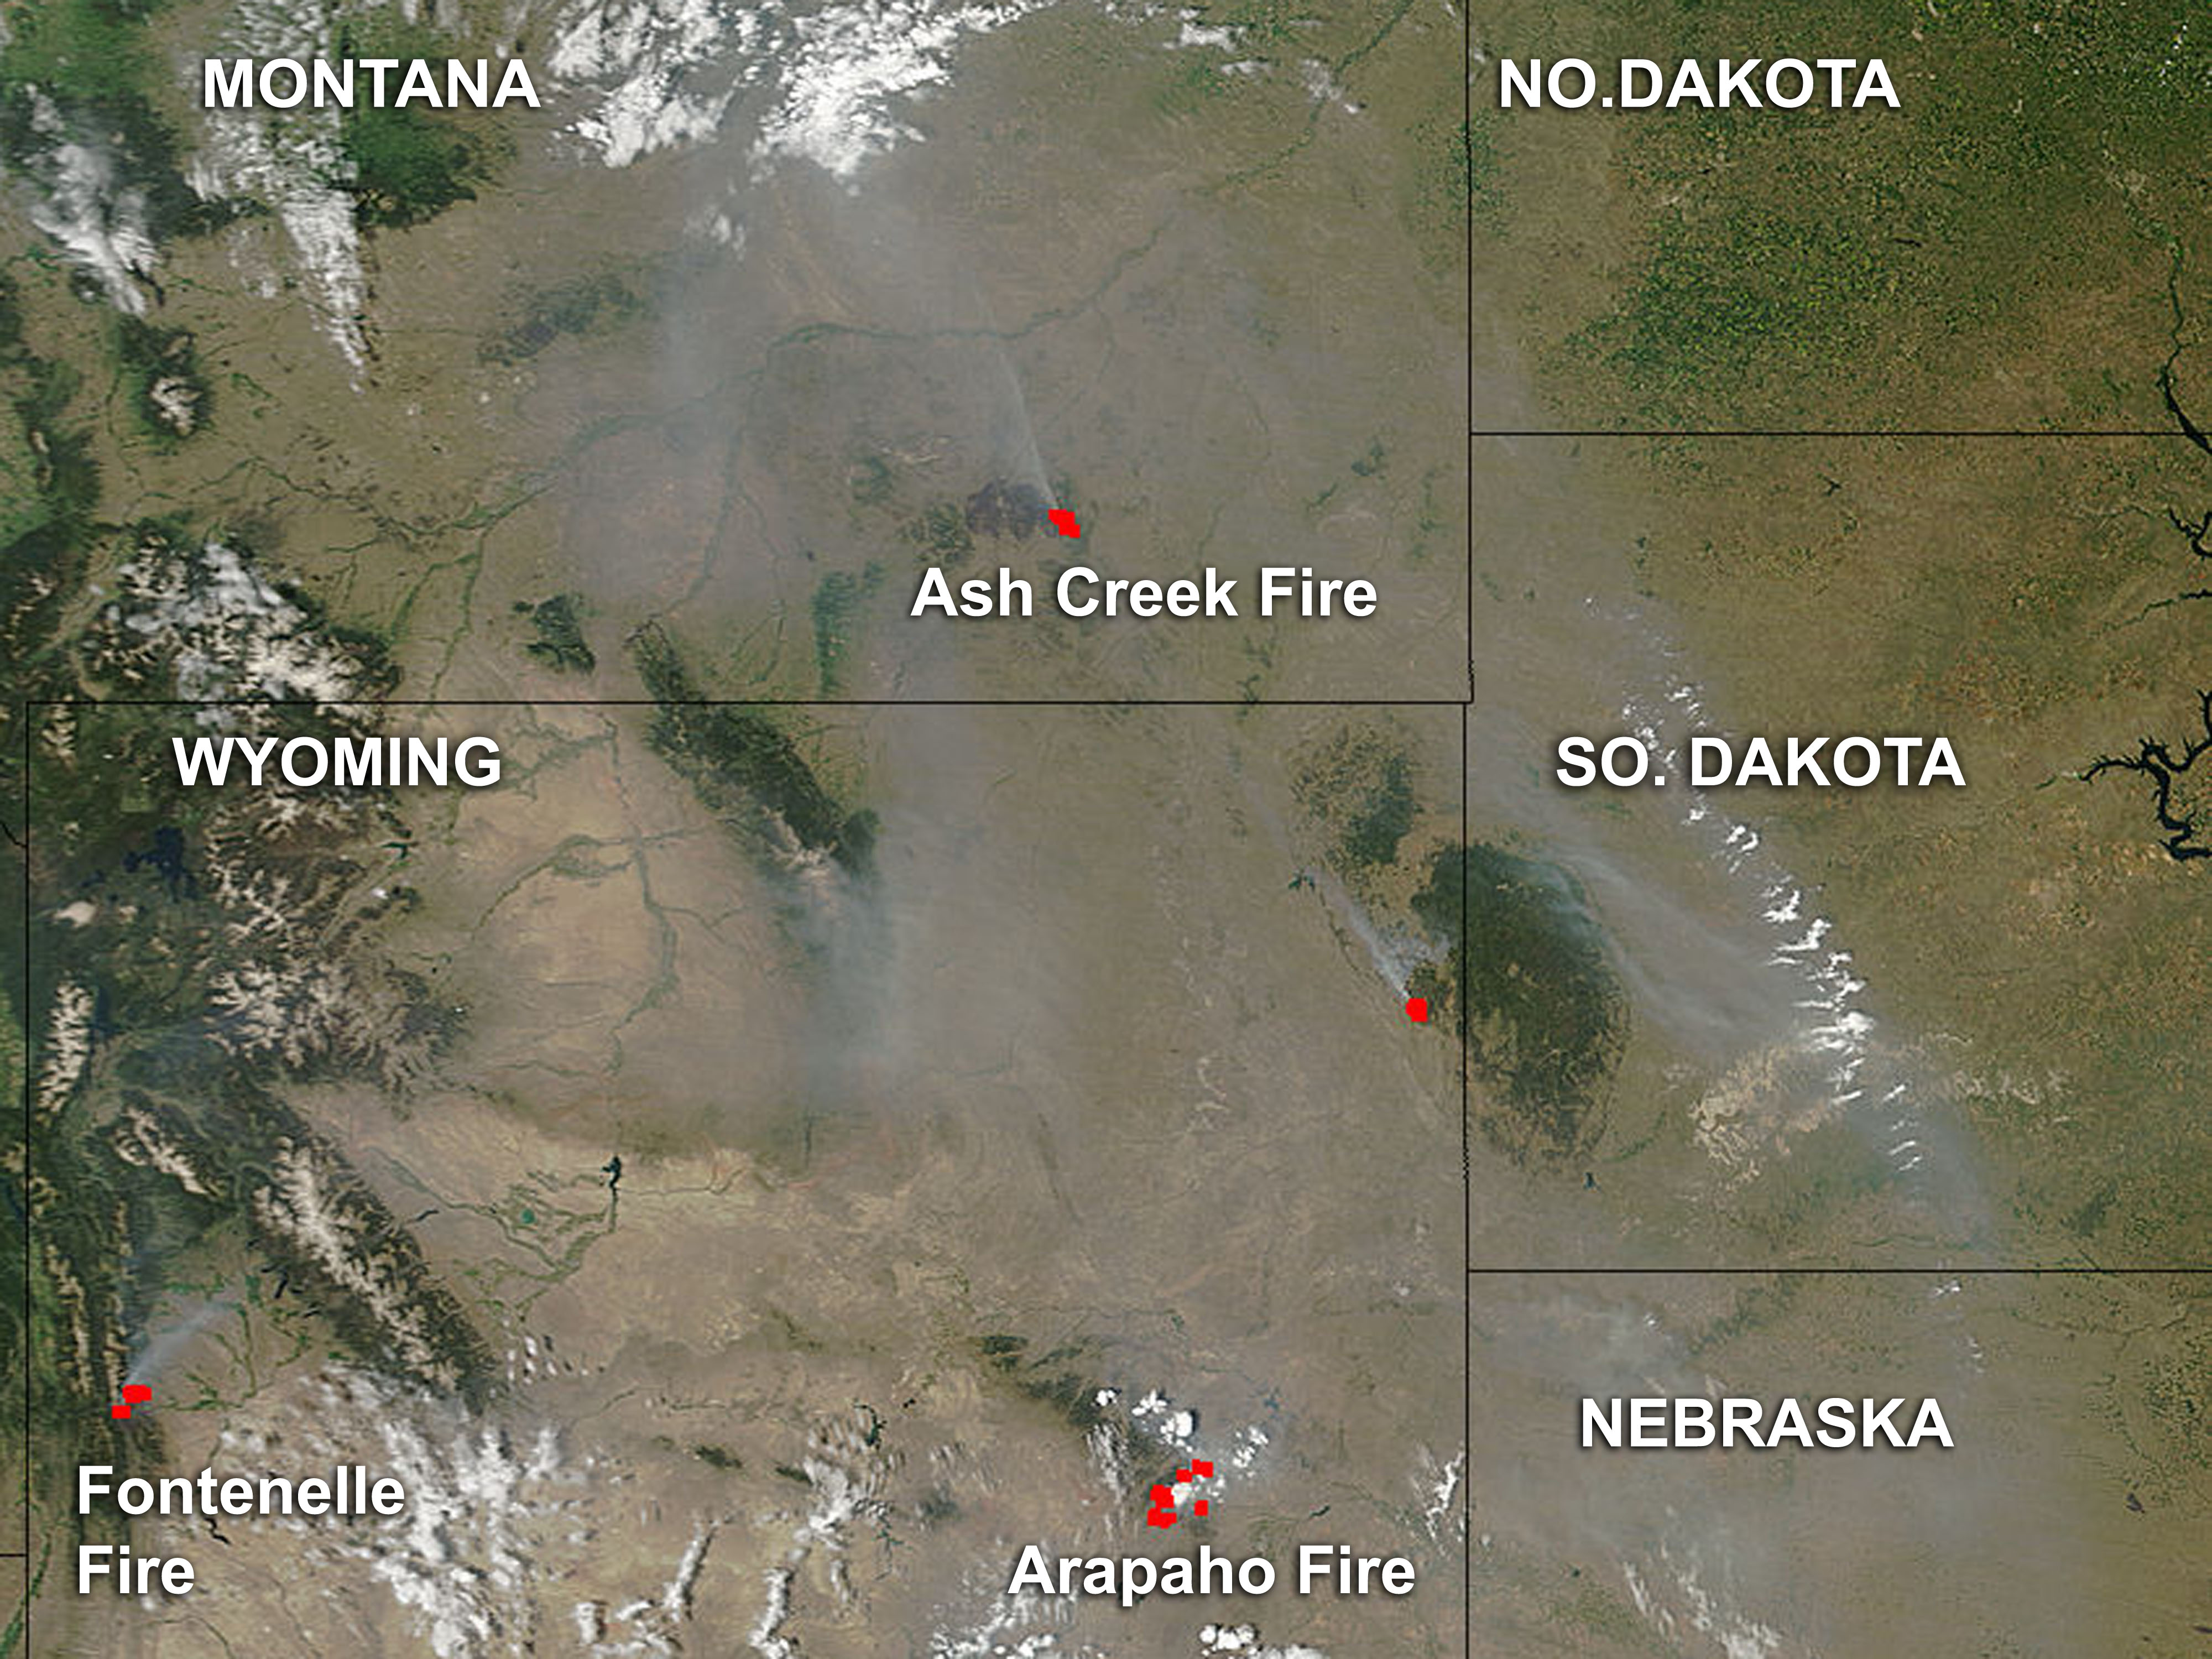 Nasa Smoke And Fires In Montana And Wyoming